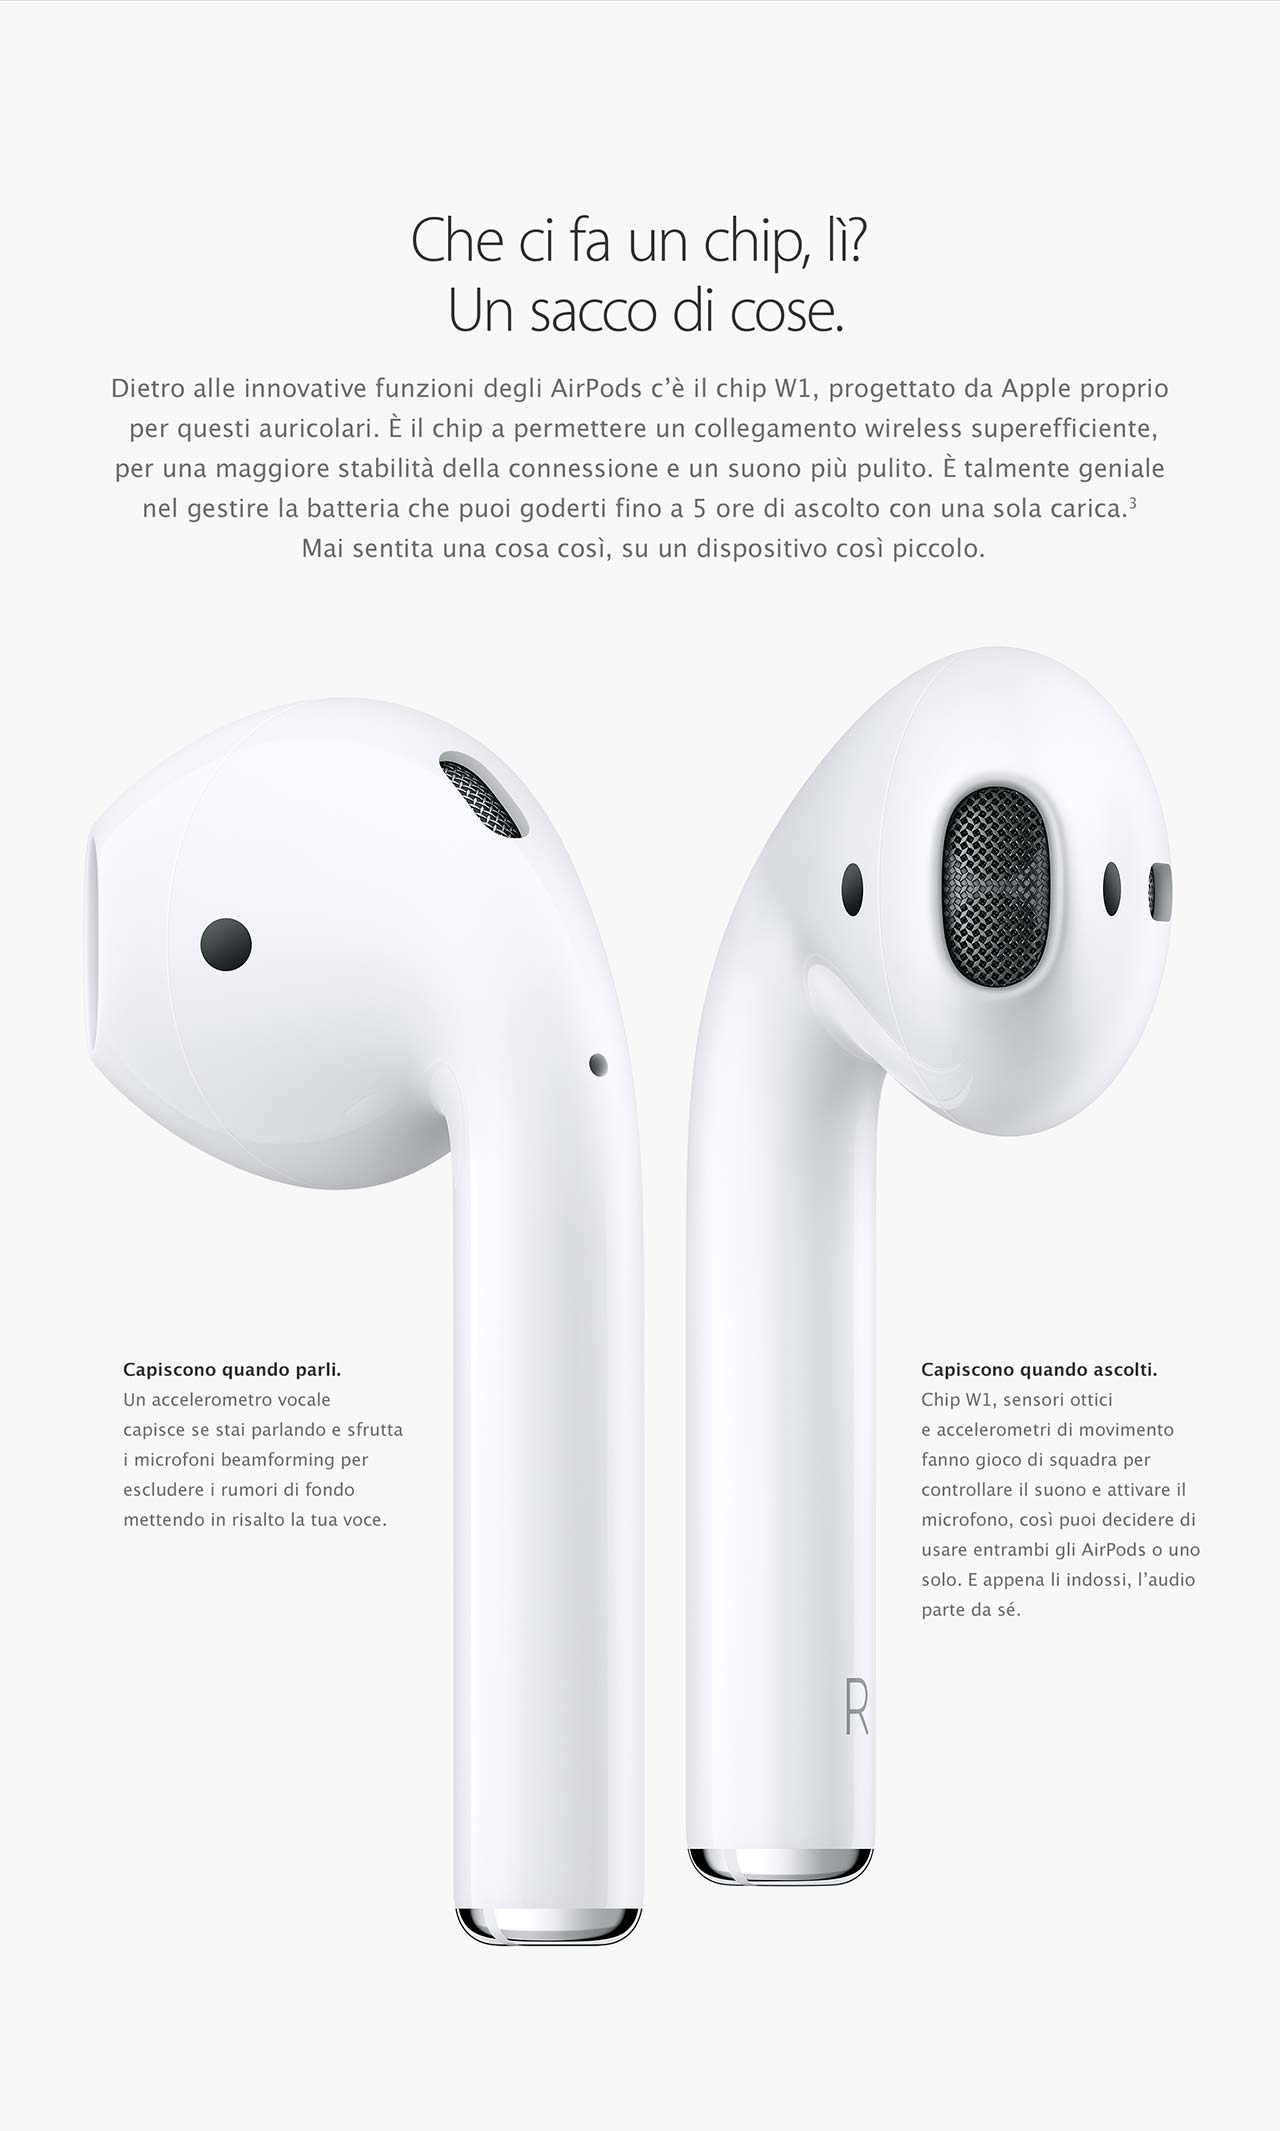 AirPods chip